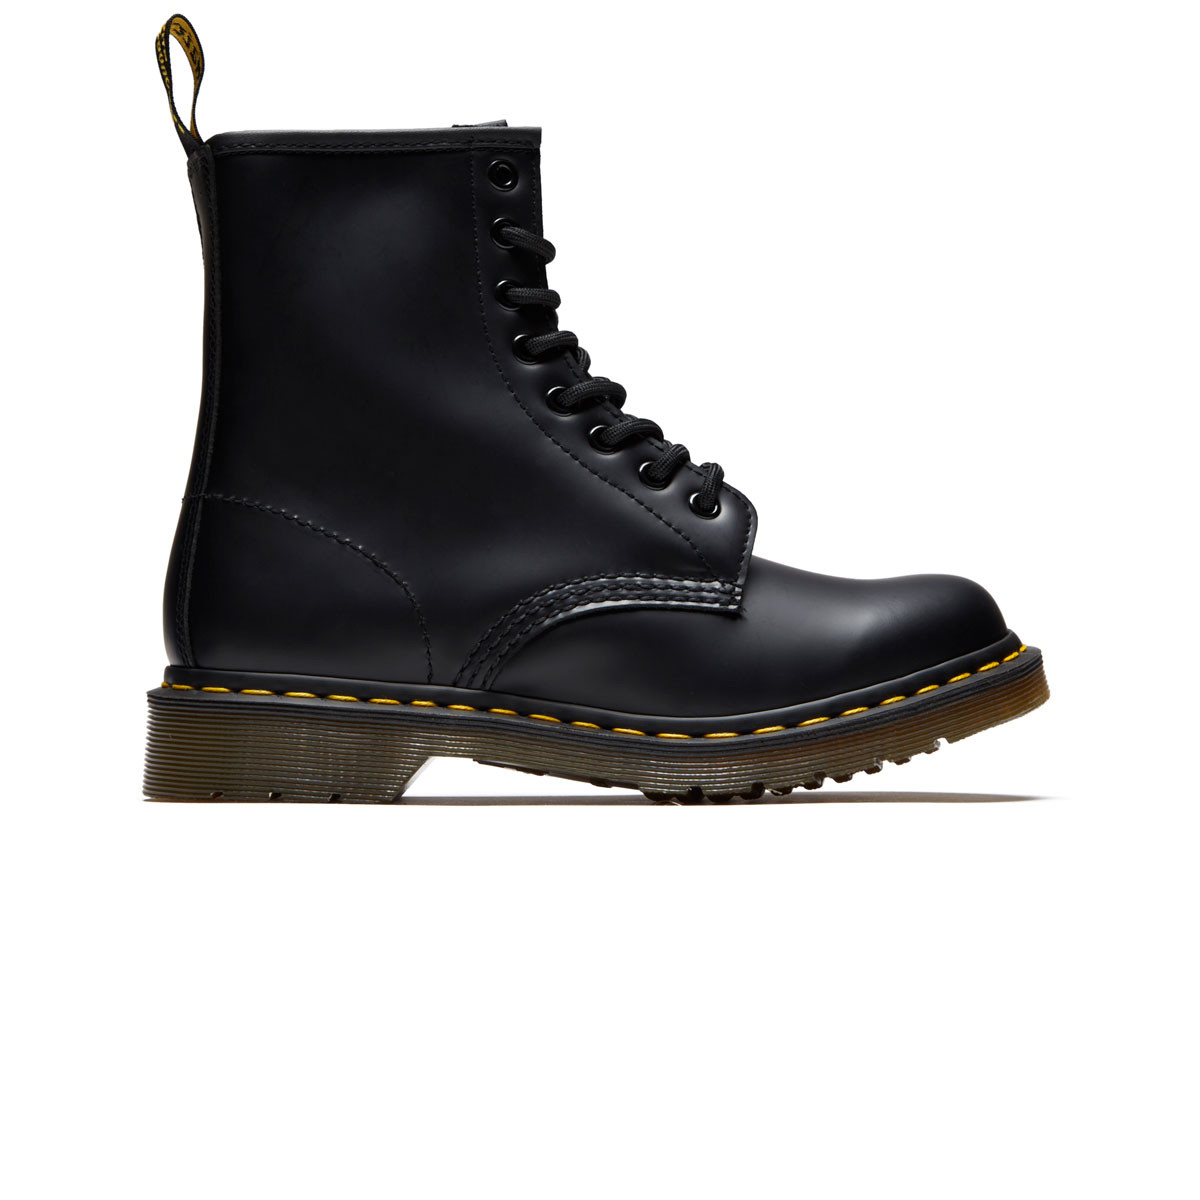 b166c961c38 Dr. Martens Womens 1460 8 Eye Smooth Leather Boots